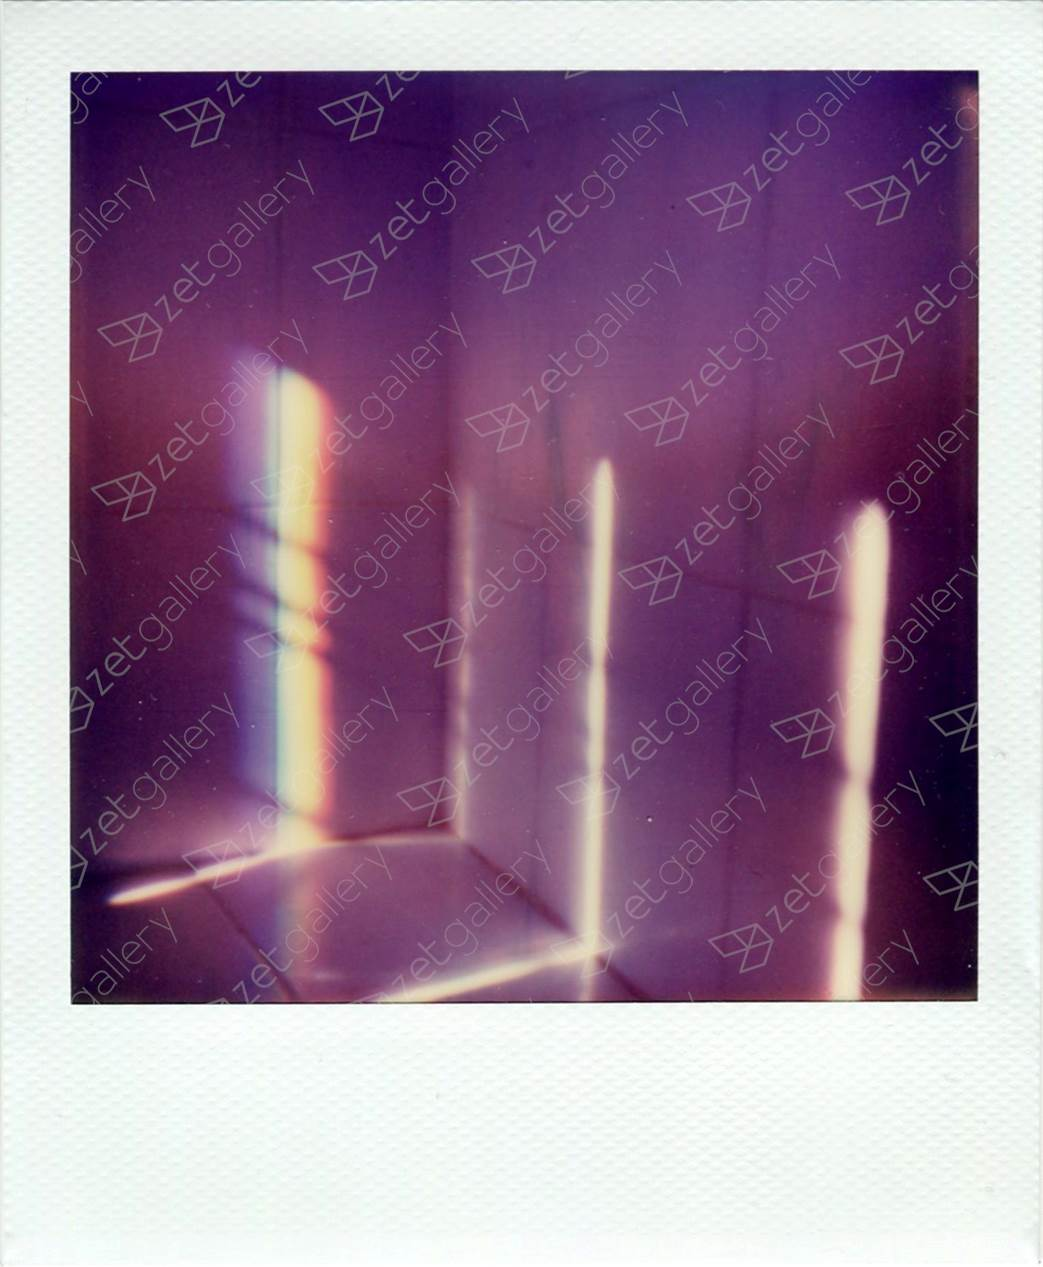 Polaroid 2, original Abstract Analog Photography by Yorgos Kapsalakis